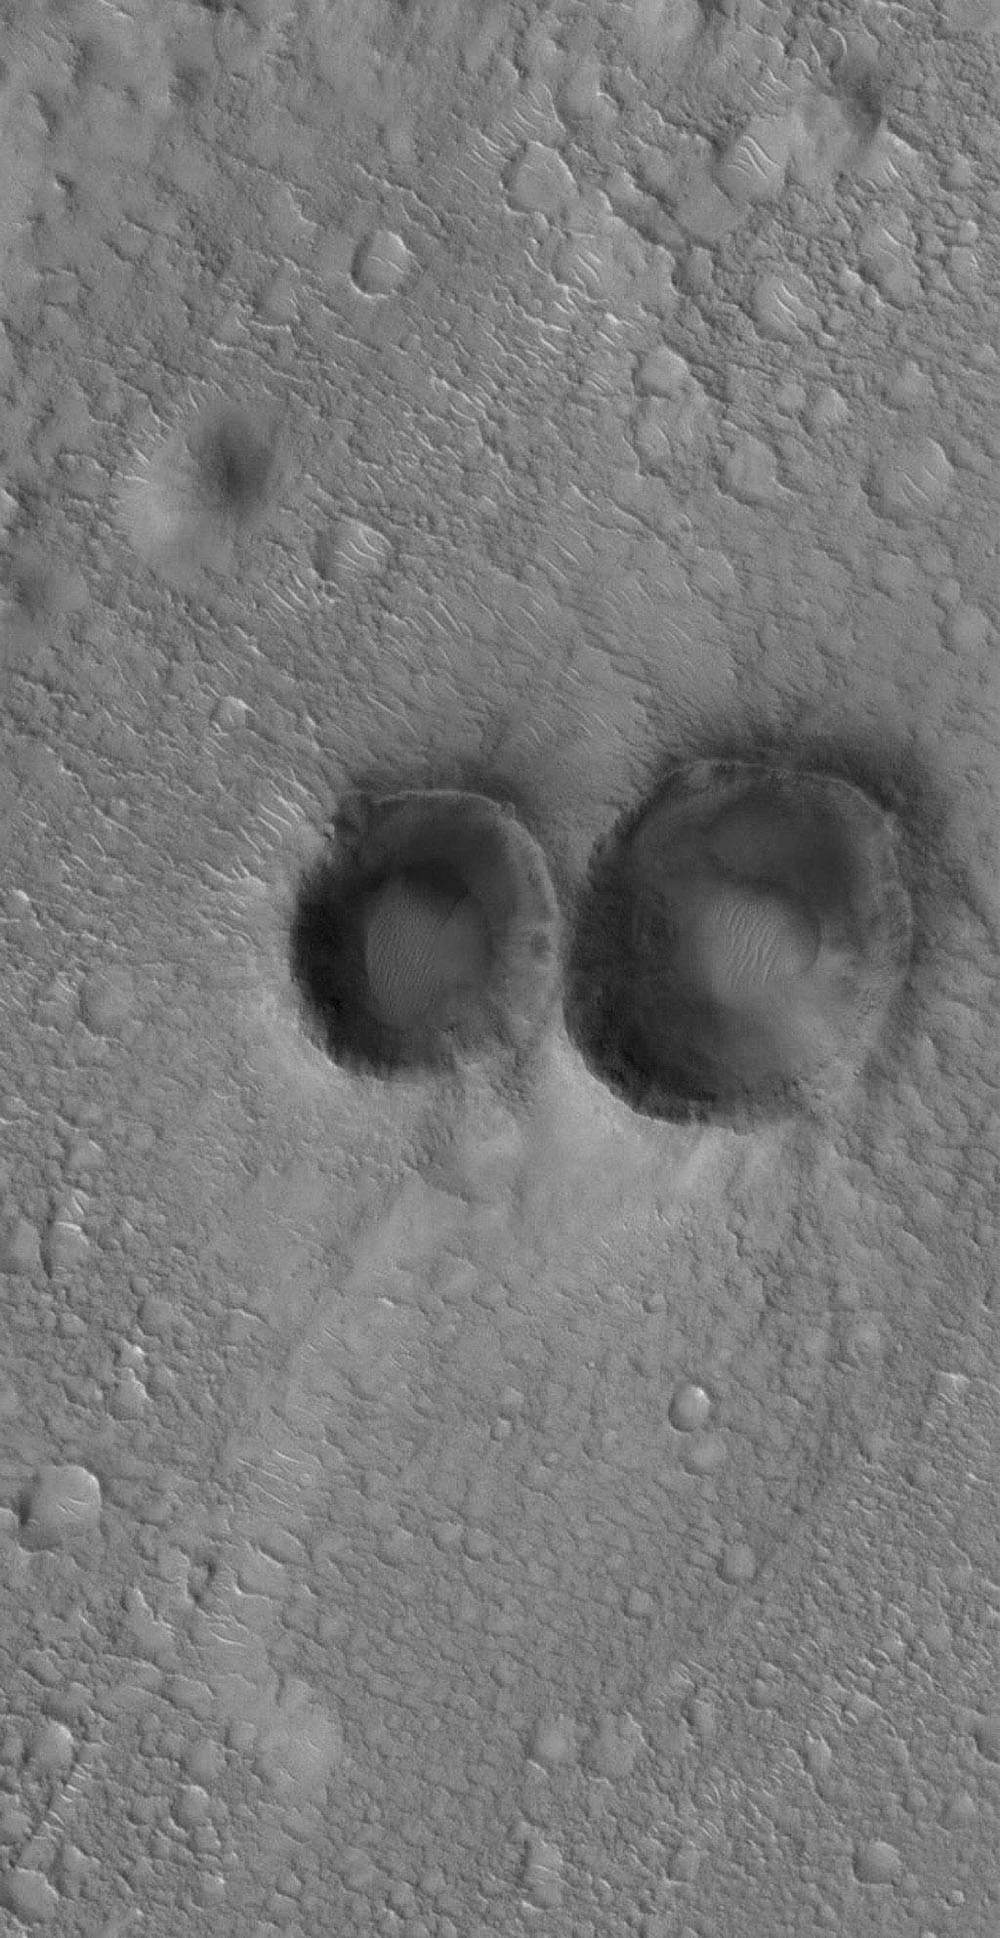 NASA's Mars Global Surveyor shows a pair of small meteor impact craters in the Arena Colles region of Mars, located north of Isidis Planitia.